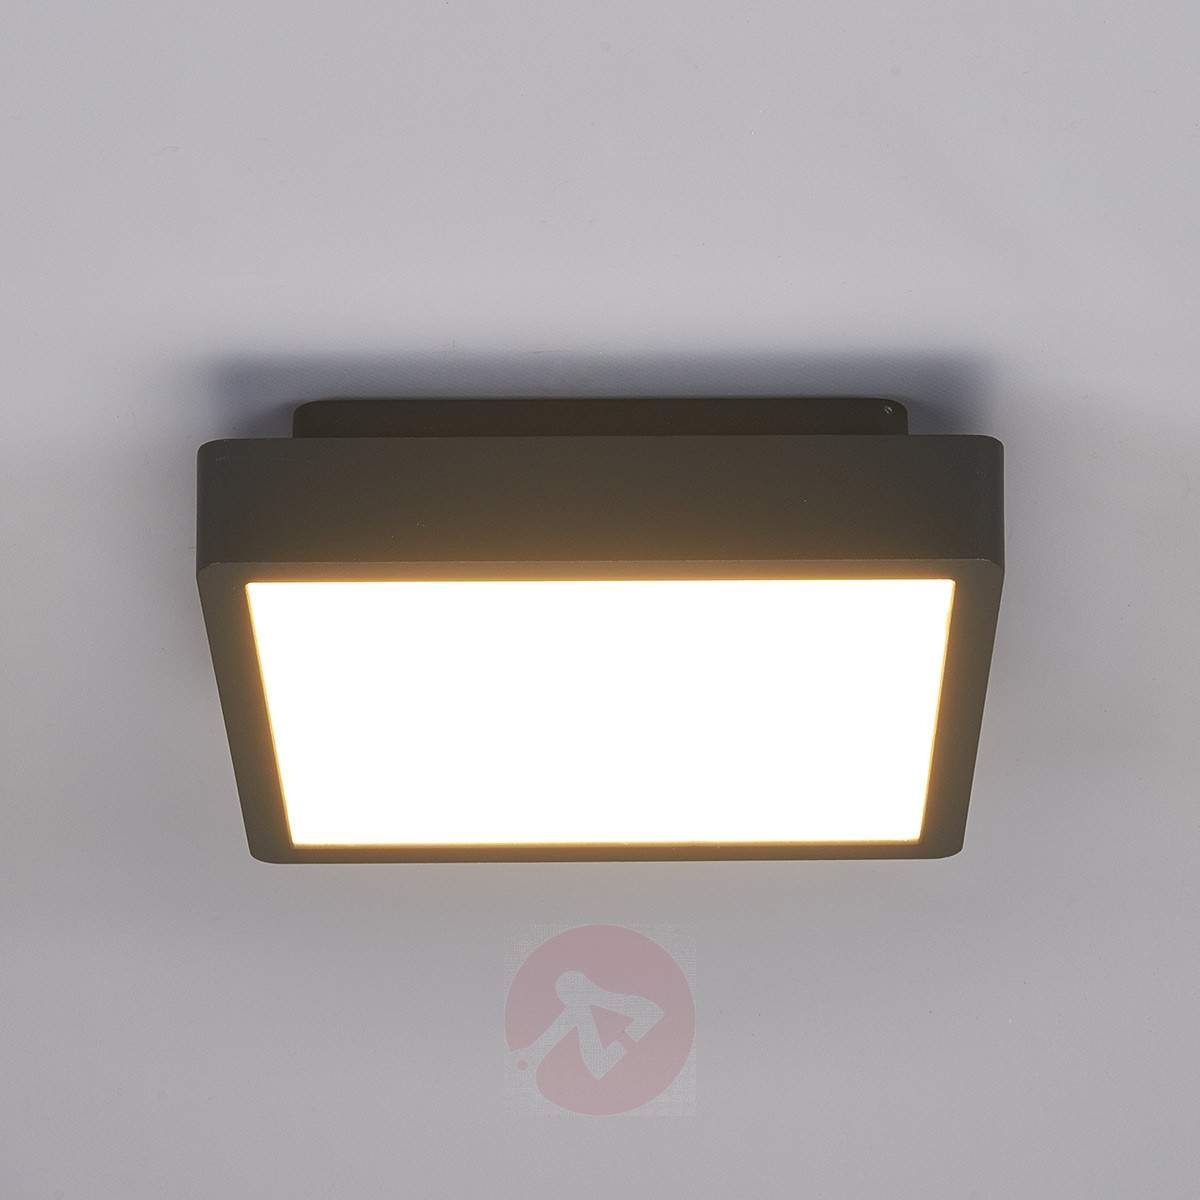 Inspiration about Rectangular Led Outdoor Ceiling Light Talea | Lights.co.uk Pertaining To Cheap Outdoor Ceiling Lights (#6 of 15)